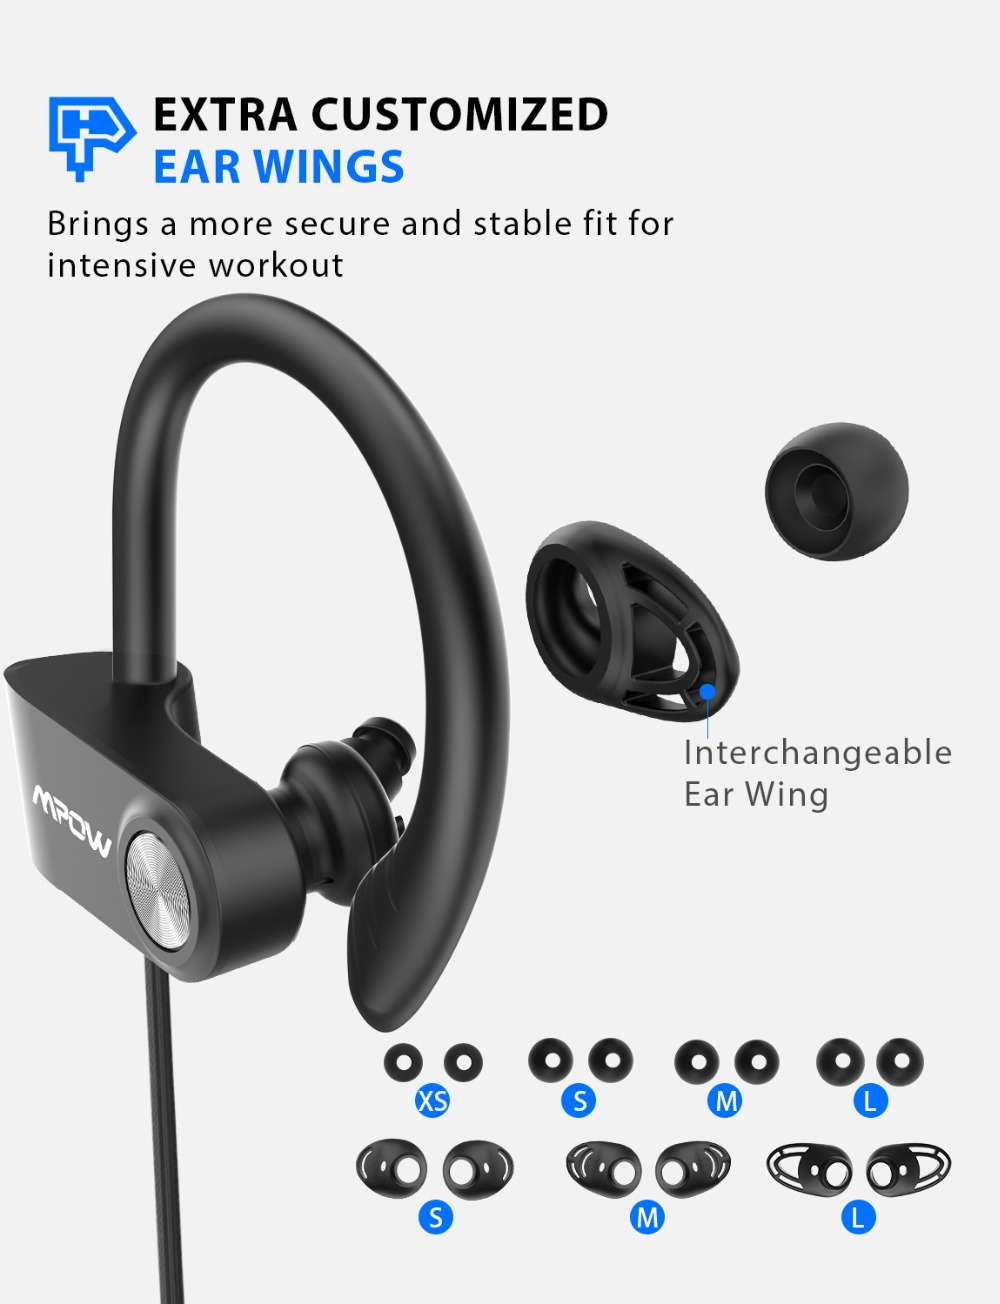 Mpow D9 Bluetooth 5.0 Earphone Aptx Wireless Sport Headphone With IPX7 Waterproof Noise Cancelling Mic 18H Playtime For Running (6)